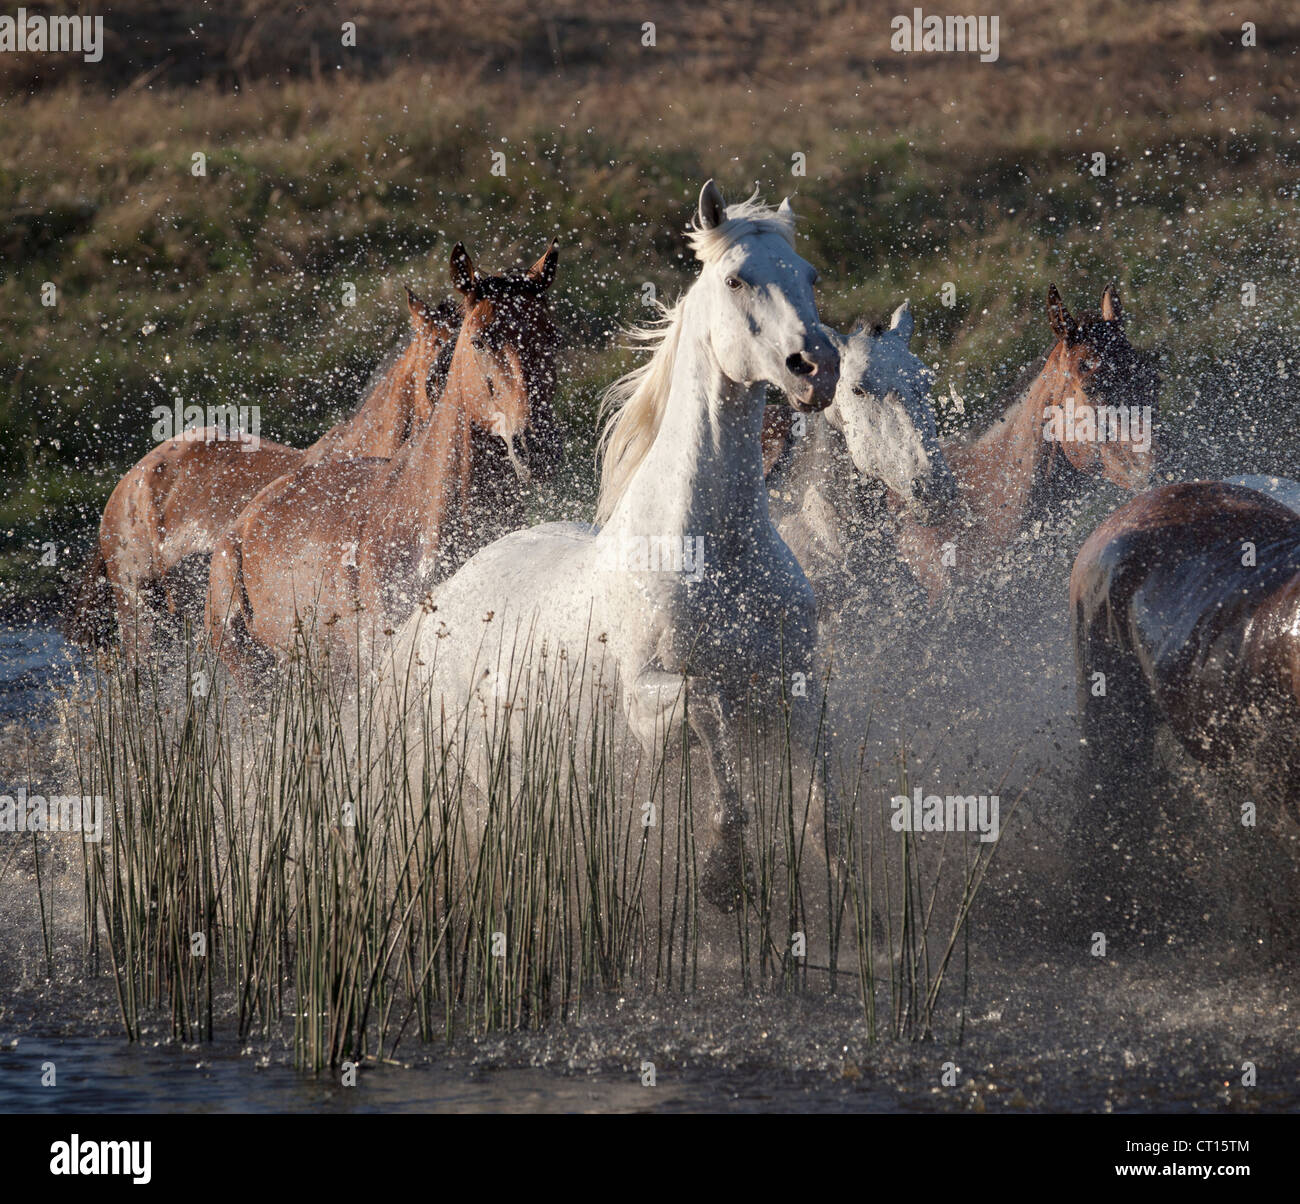 Horses running through water - Stock Image